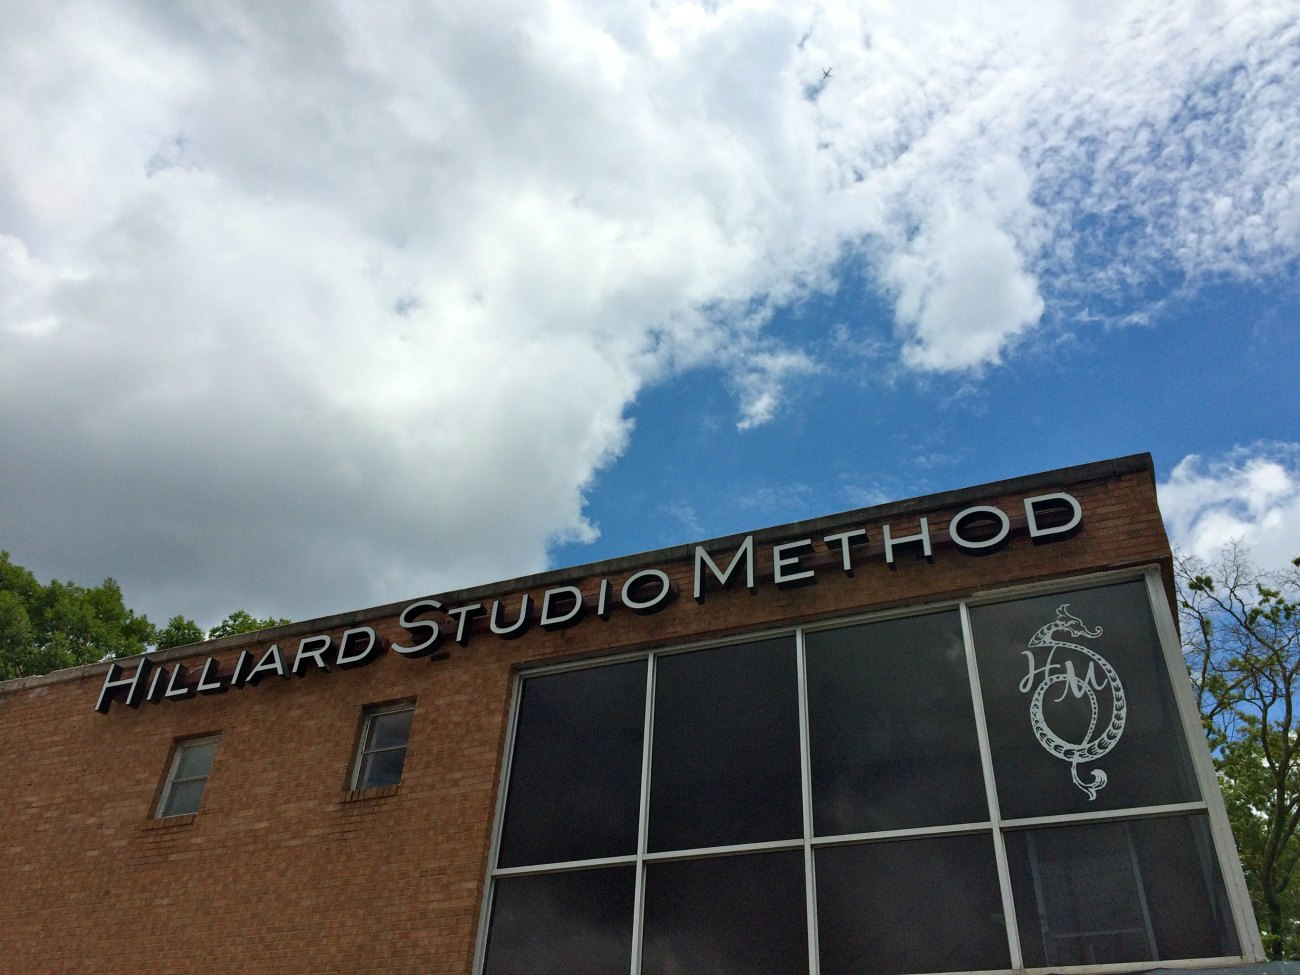 Hilliard Studio Method expanding fitness class offering to Davidson and (eventually) beyond